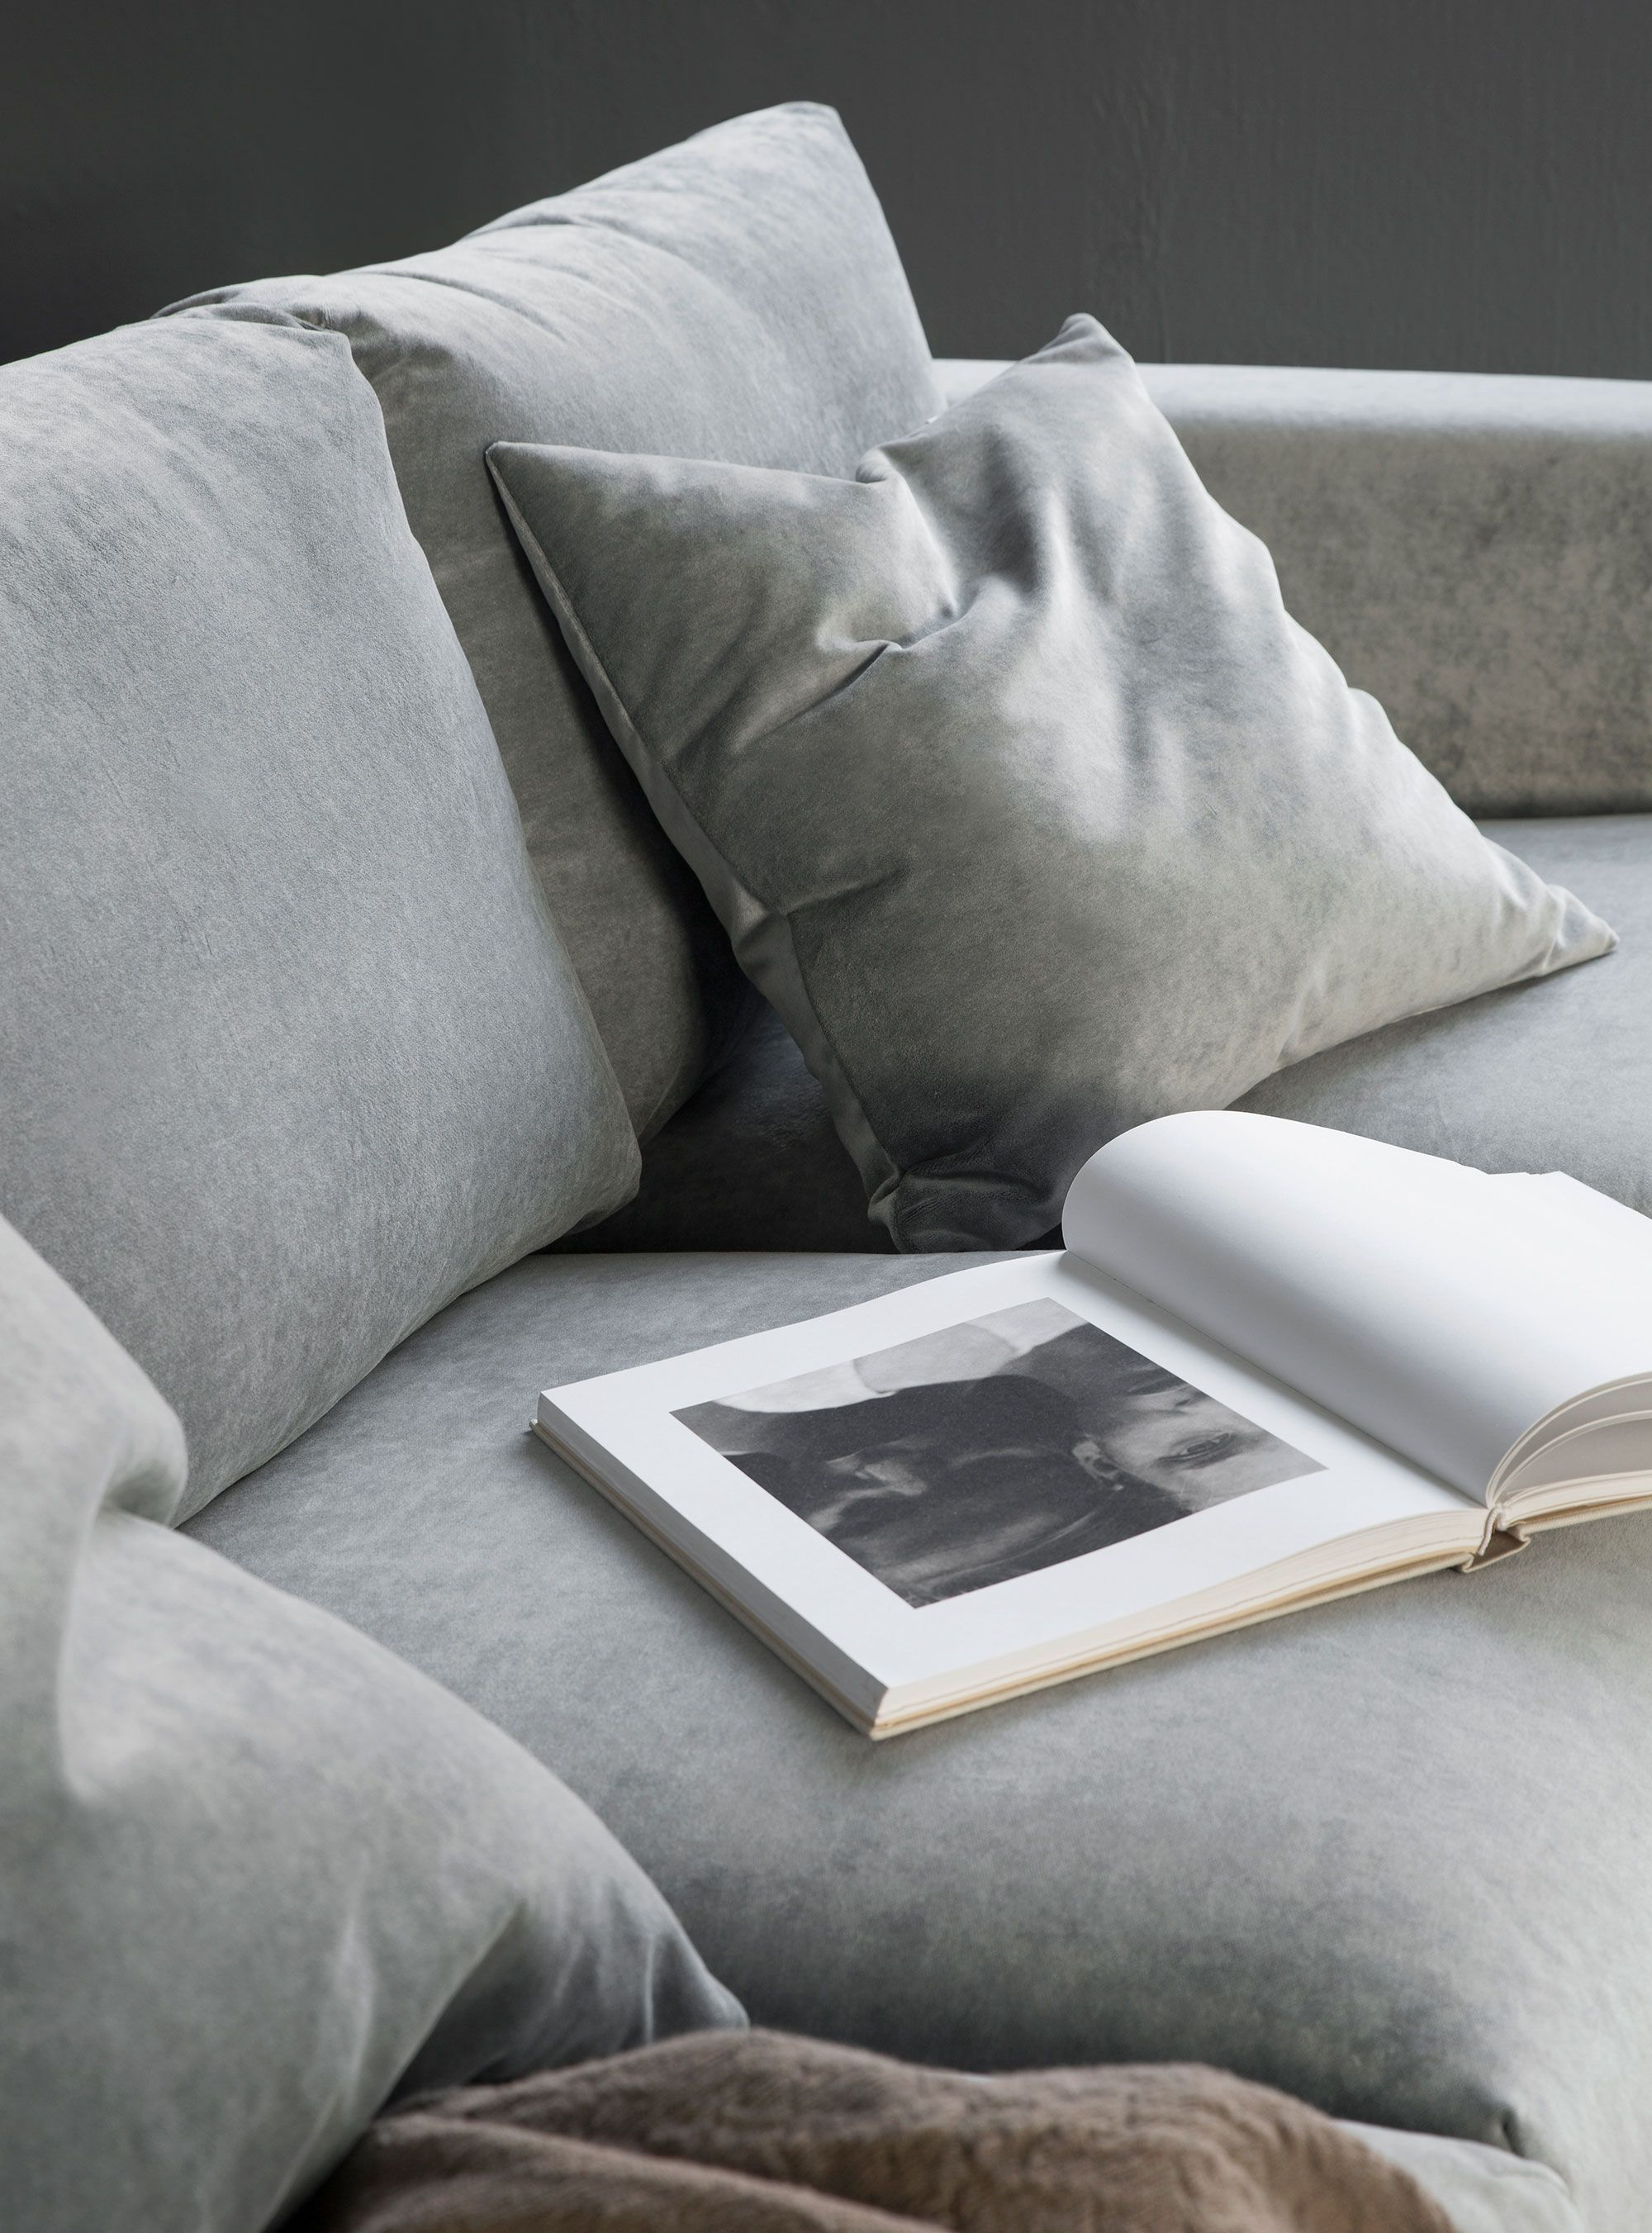 Moody Shades Grey Velvet Sofa Scandinavian Minimalism Ikea Vimle With A Bemz Cover In Zinc Malmen Styled By Pella Hedeby